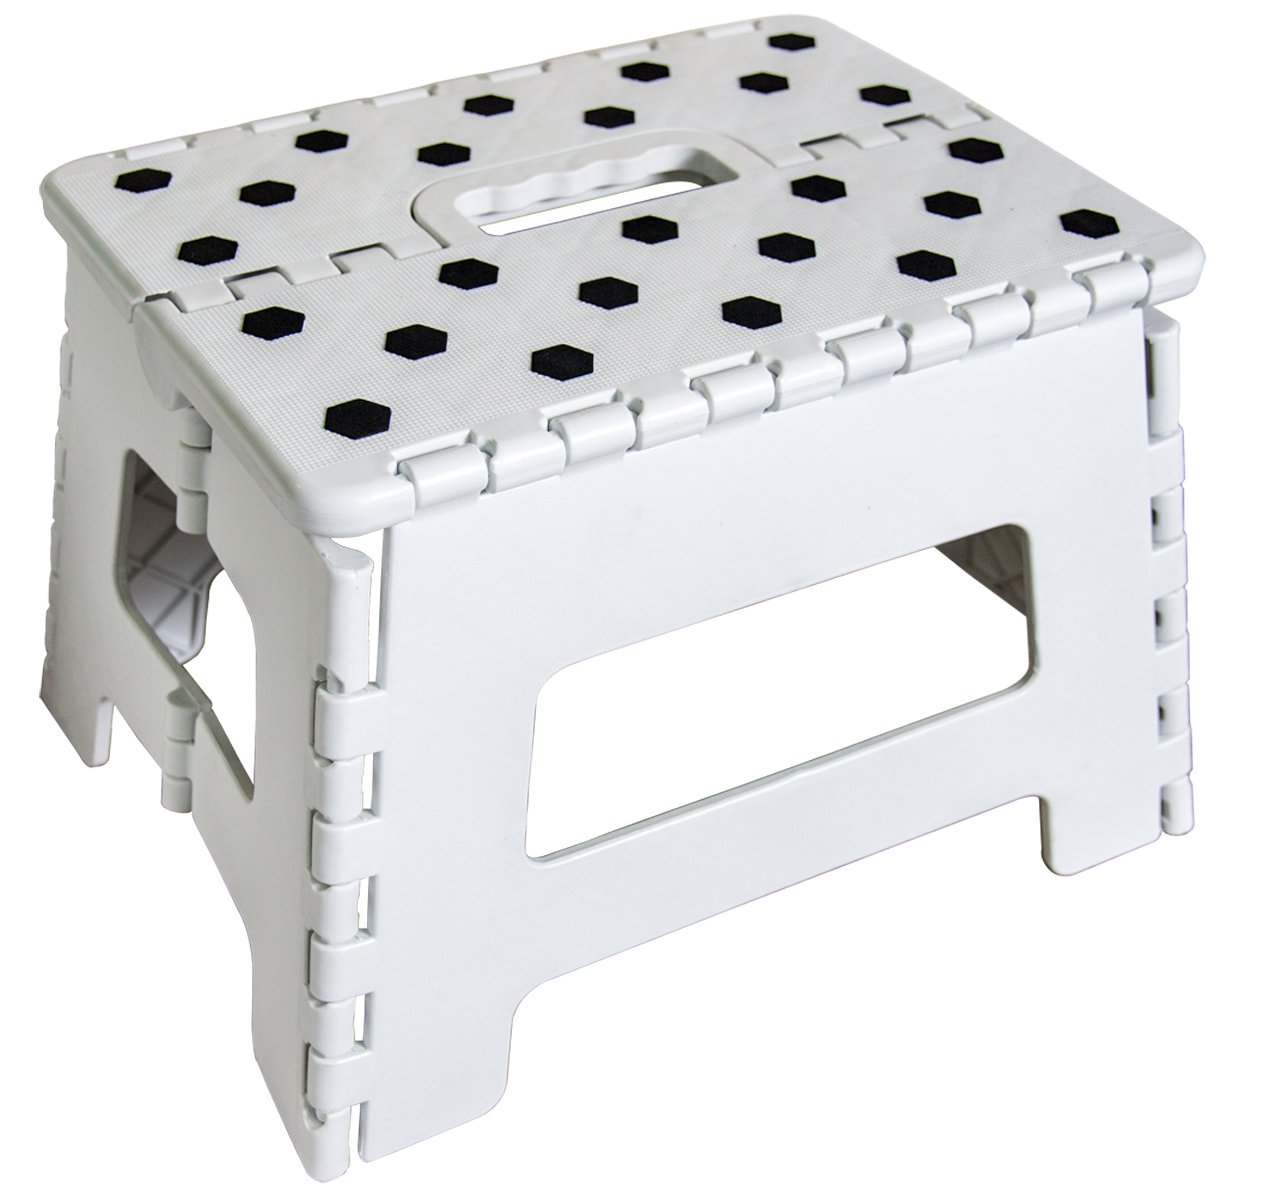 Amazon.com Orgalif Heavy Duty Folding Step Stool with Anti Slip Dots and Strong Support Ladder for Adults and Kids (White) Kitchen u0026 Dining  sc 1 st  Amazon.com & Amazon.com: Orgalif Heavy Duty Folding Step Stool with Anti Slip ... islam-shia.org